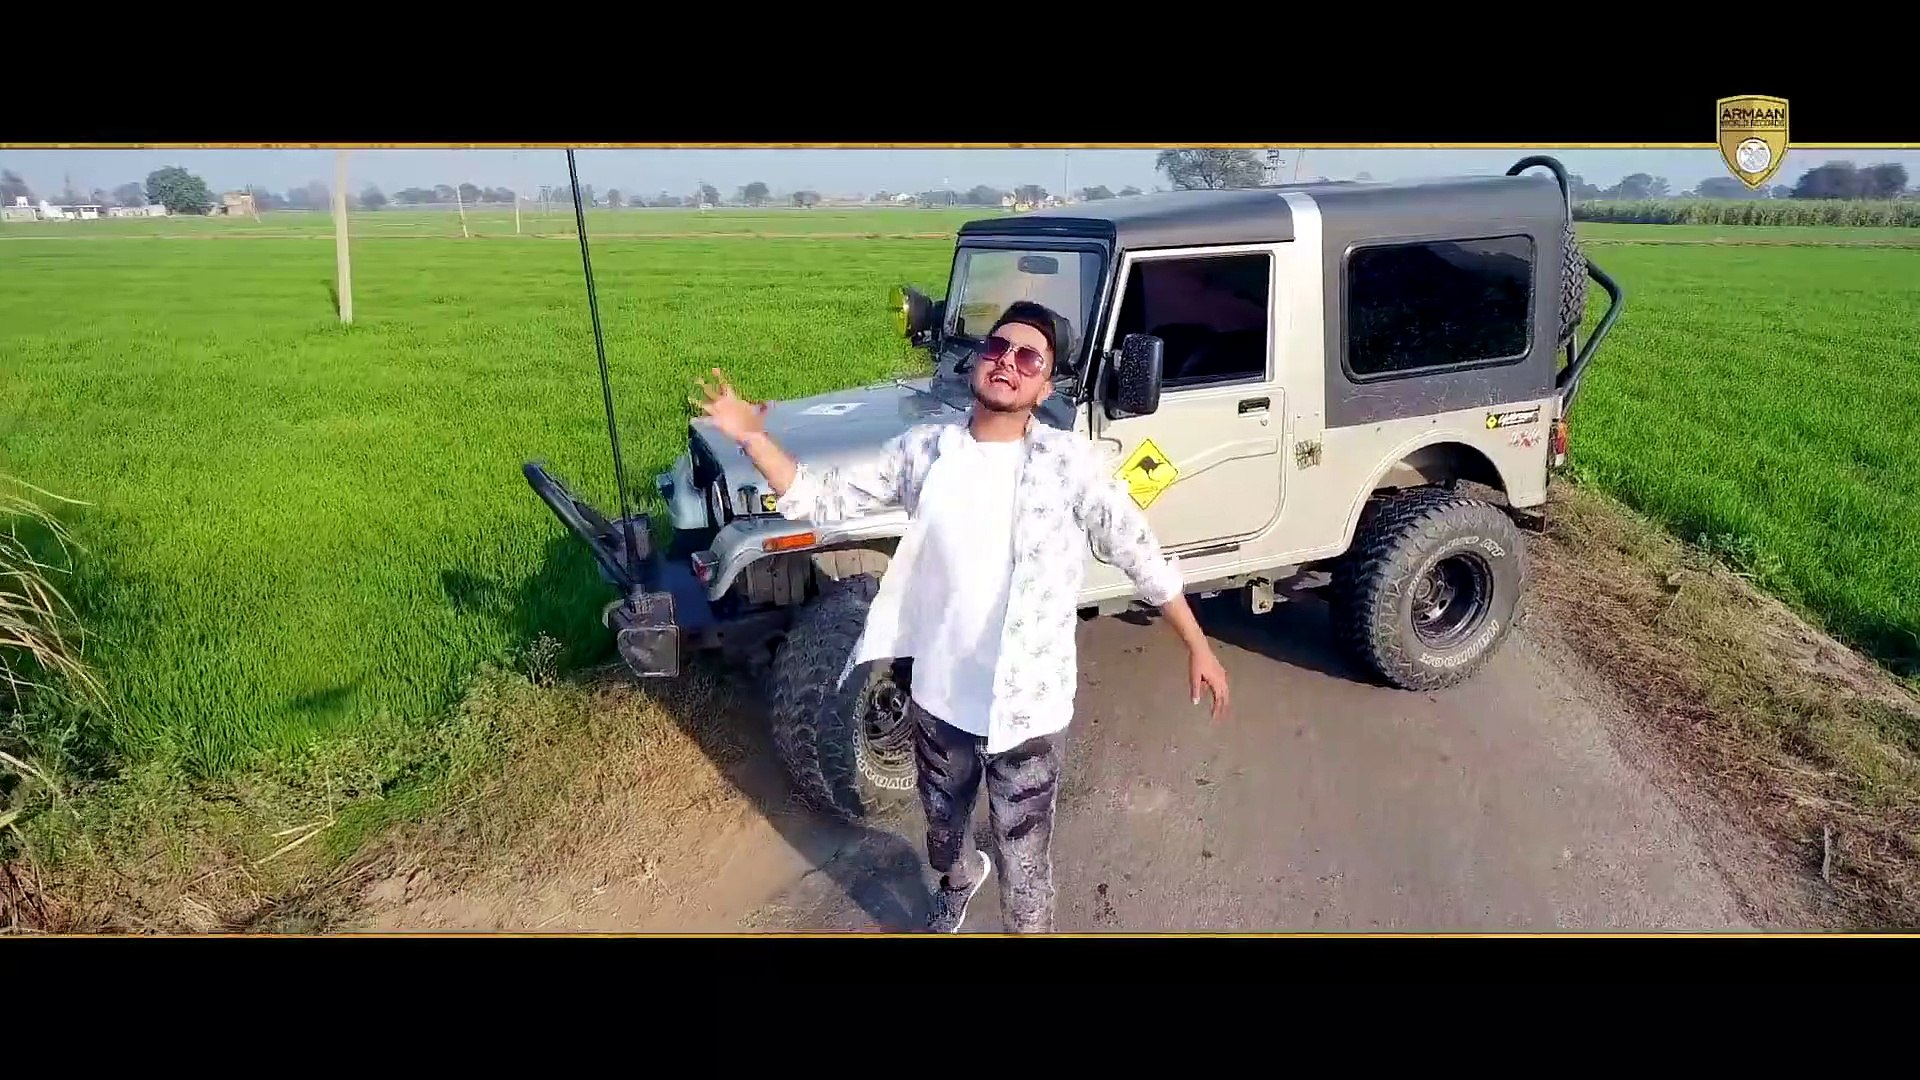 New Punjabi Songs 2018   Yaaran Di Support   William Saroya   Latest Punjabi Songs 2018